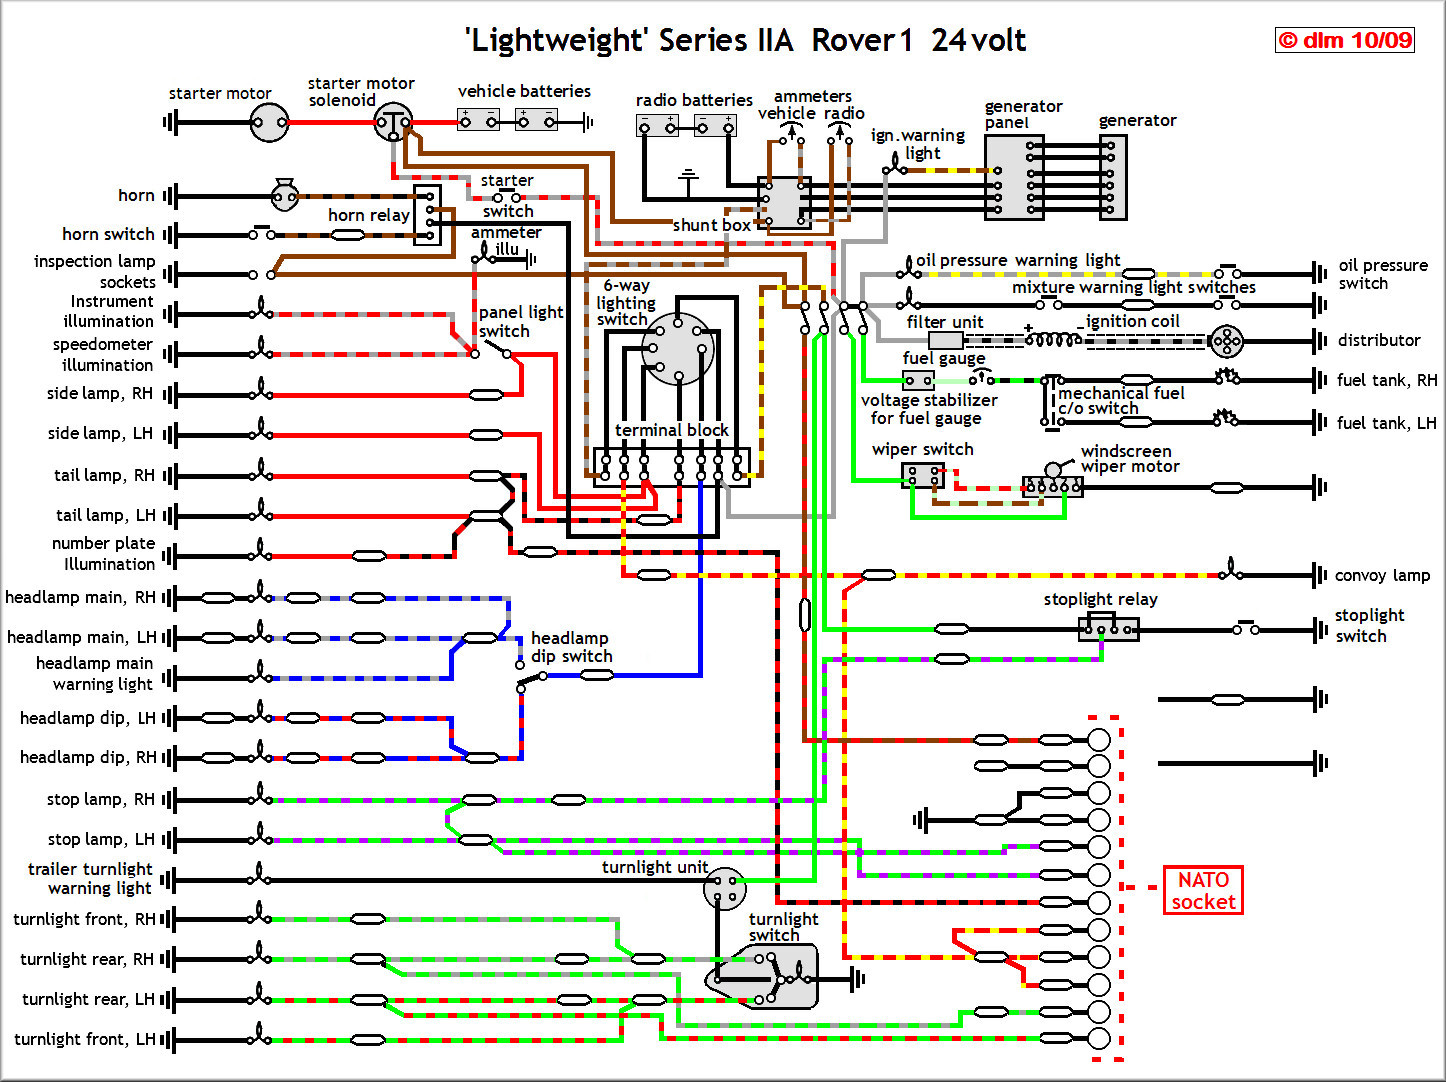 rover lr3 fuse box diagram besides wire harness plug saver on image Range Rover Fuse Box Diagram 1996 trailer ke box wiring diagram wiring library rover lr3 fuse box diagram besides wire harness plug saver on image